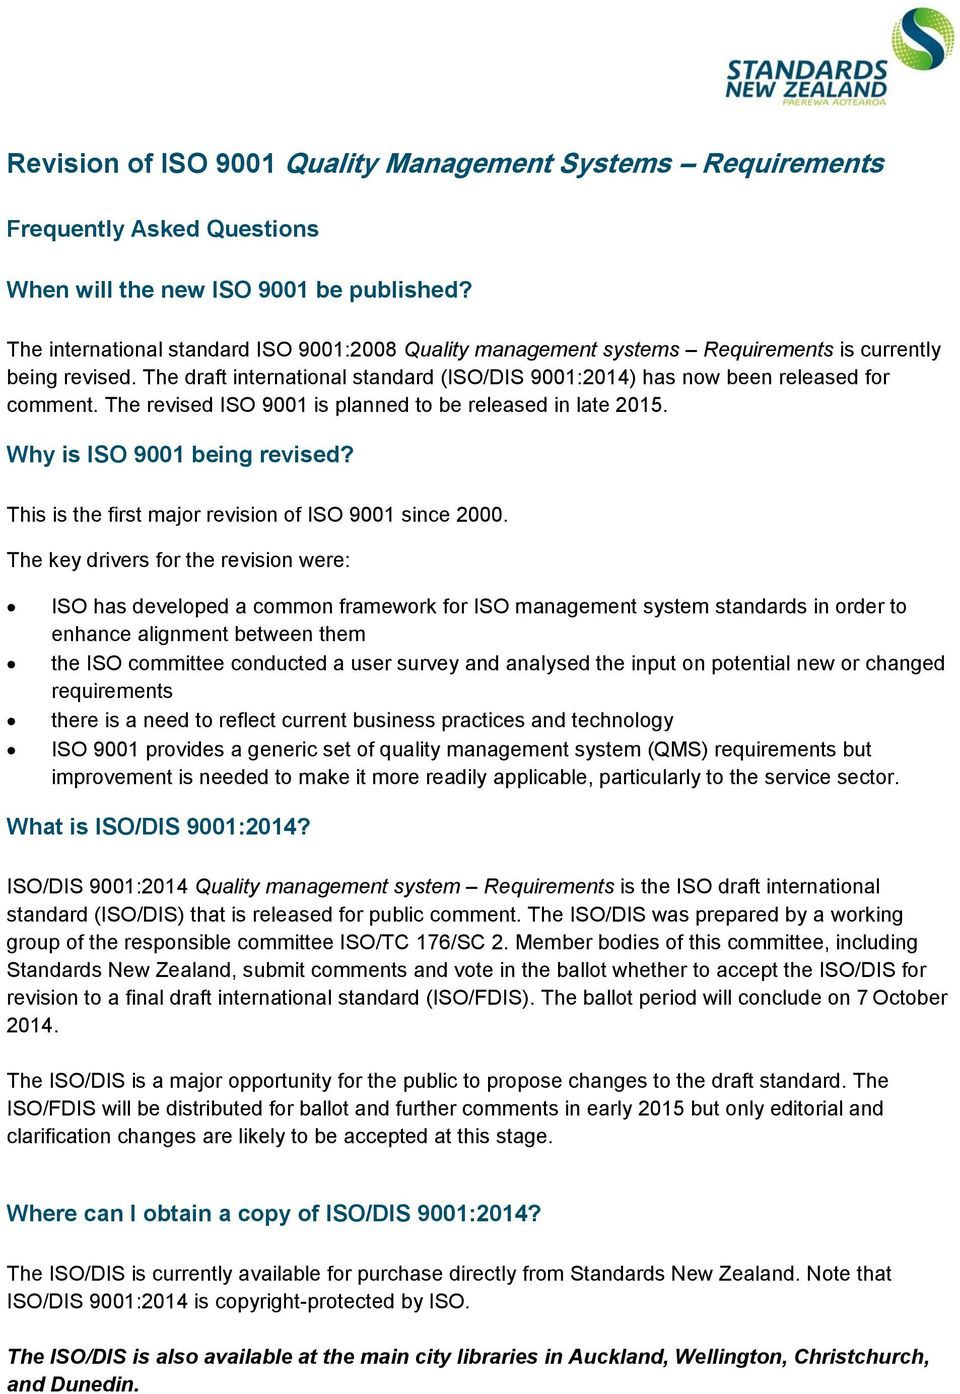 iso 9001 revision 2015 draft